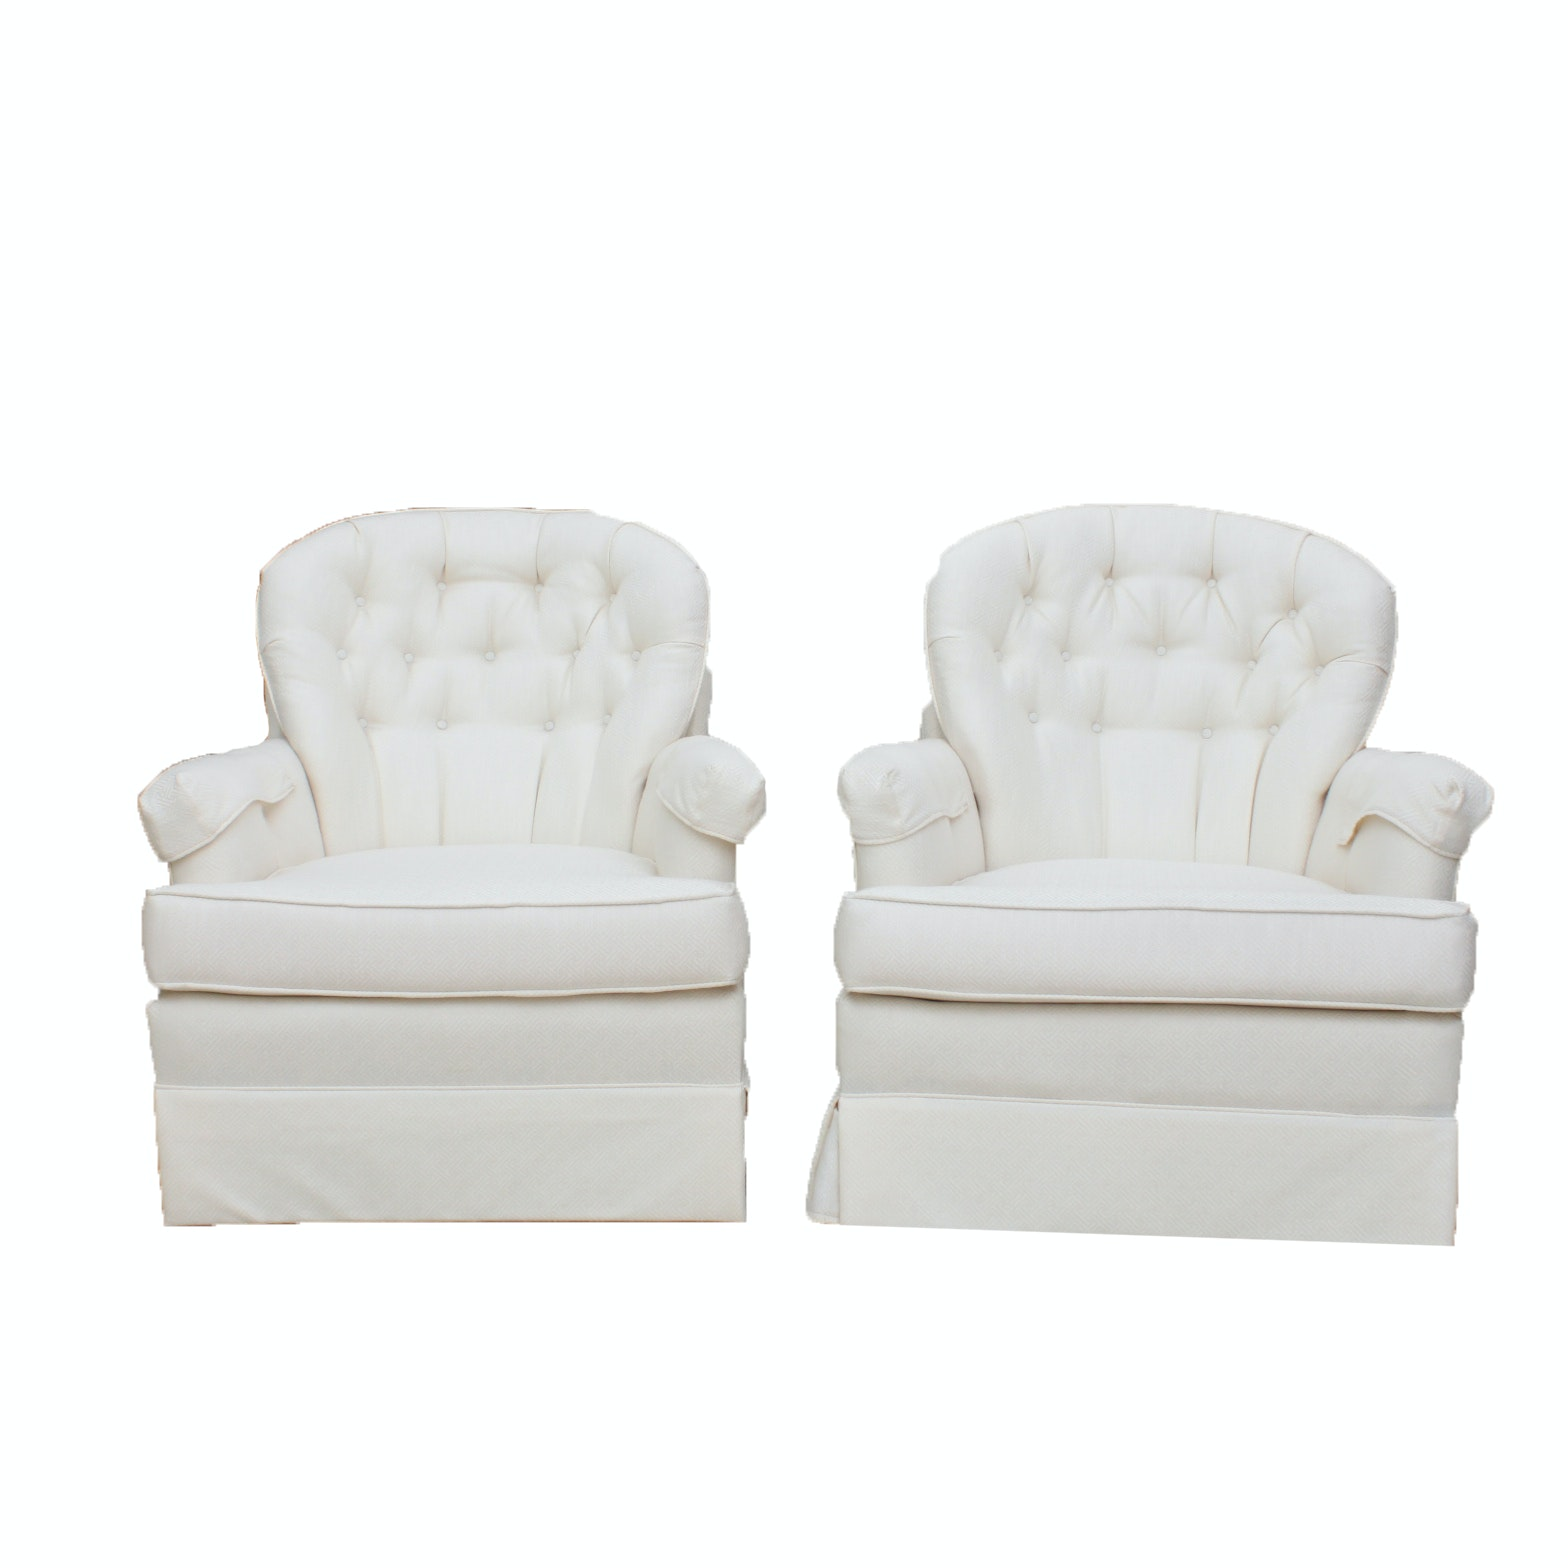 Two Vintage Armchairs by Madden Furniture